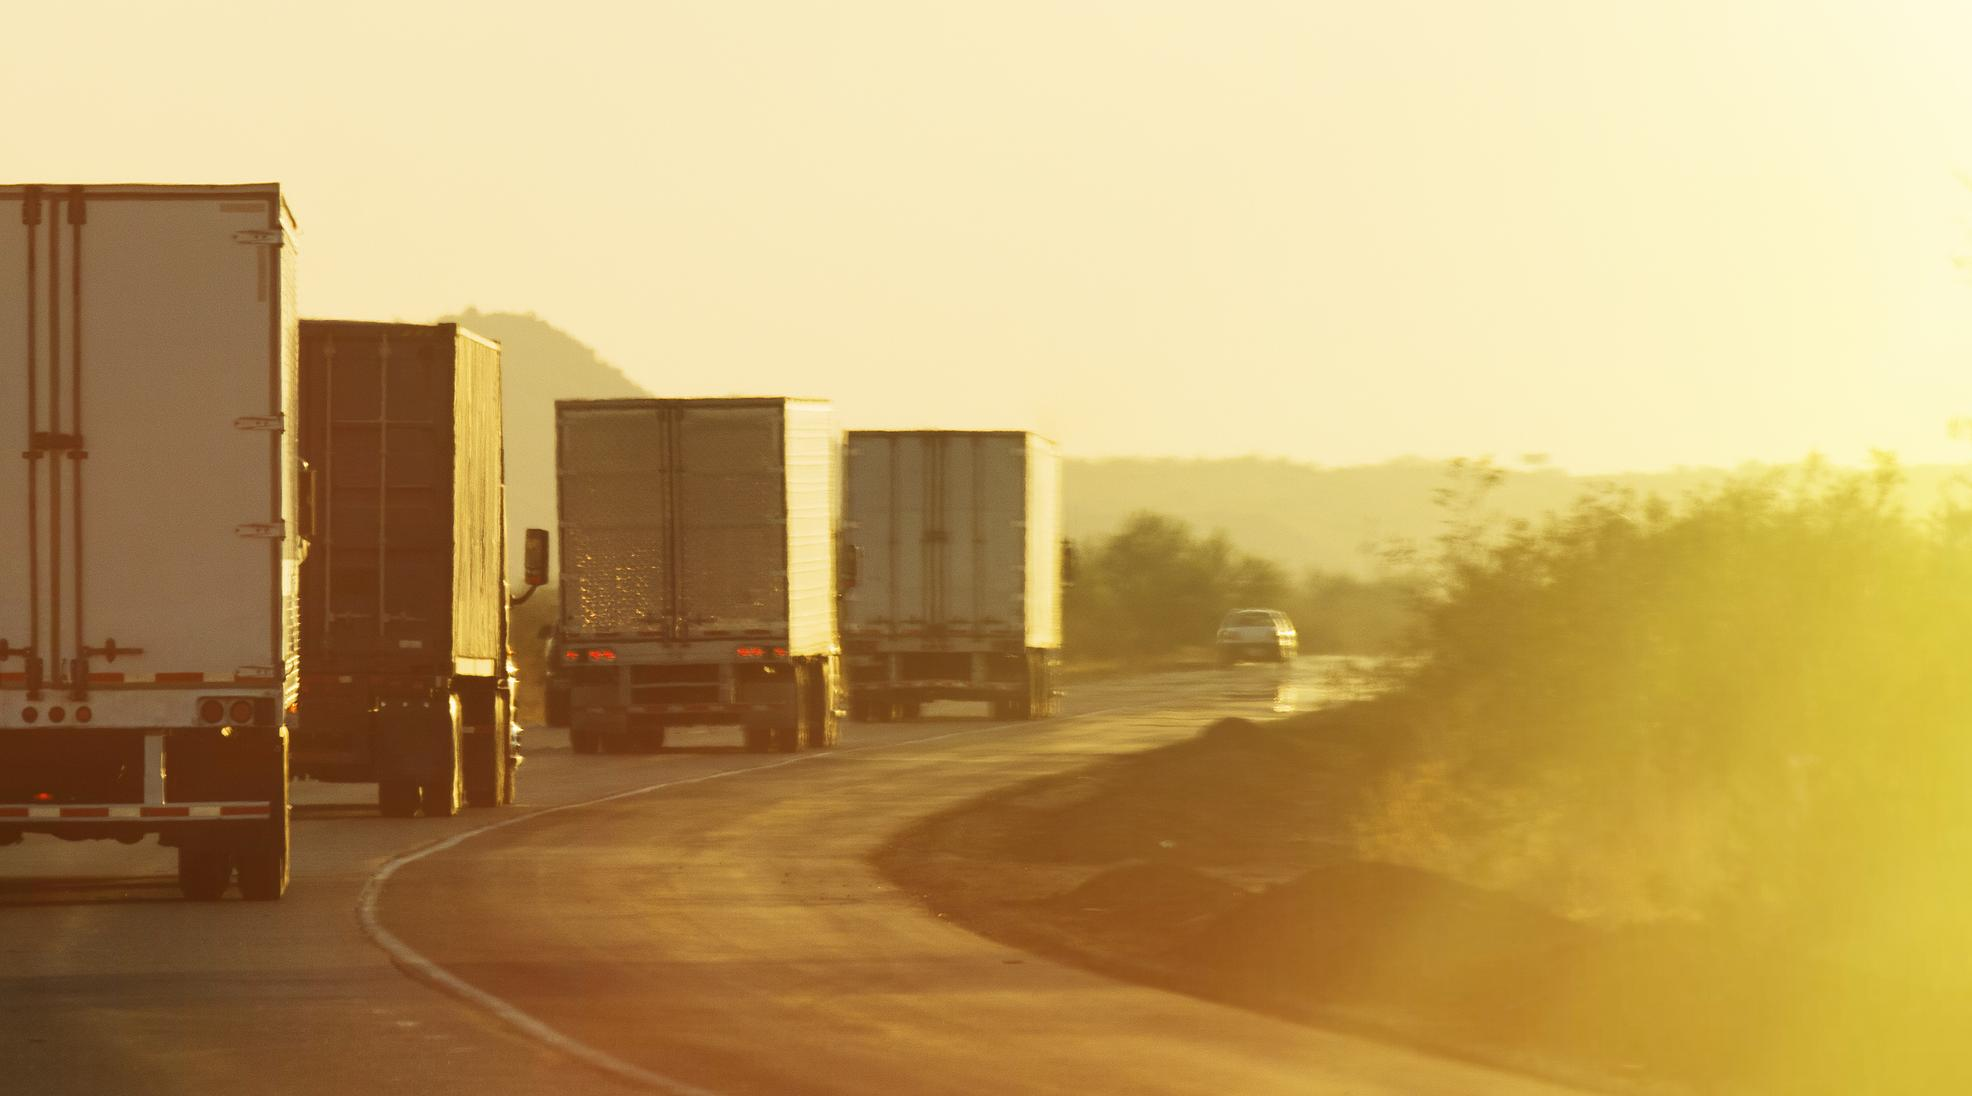 Summer 2018 Trucking Transportation Industry Update Bmo Harris Bank